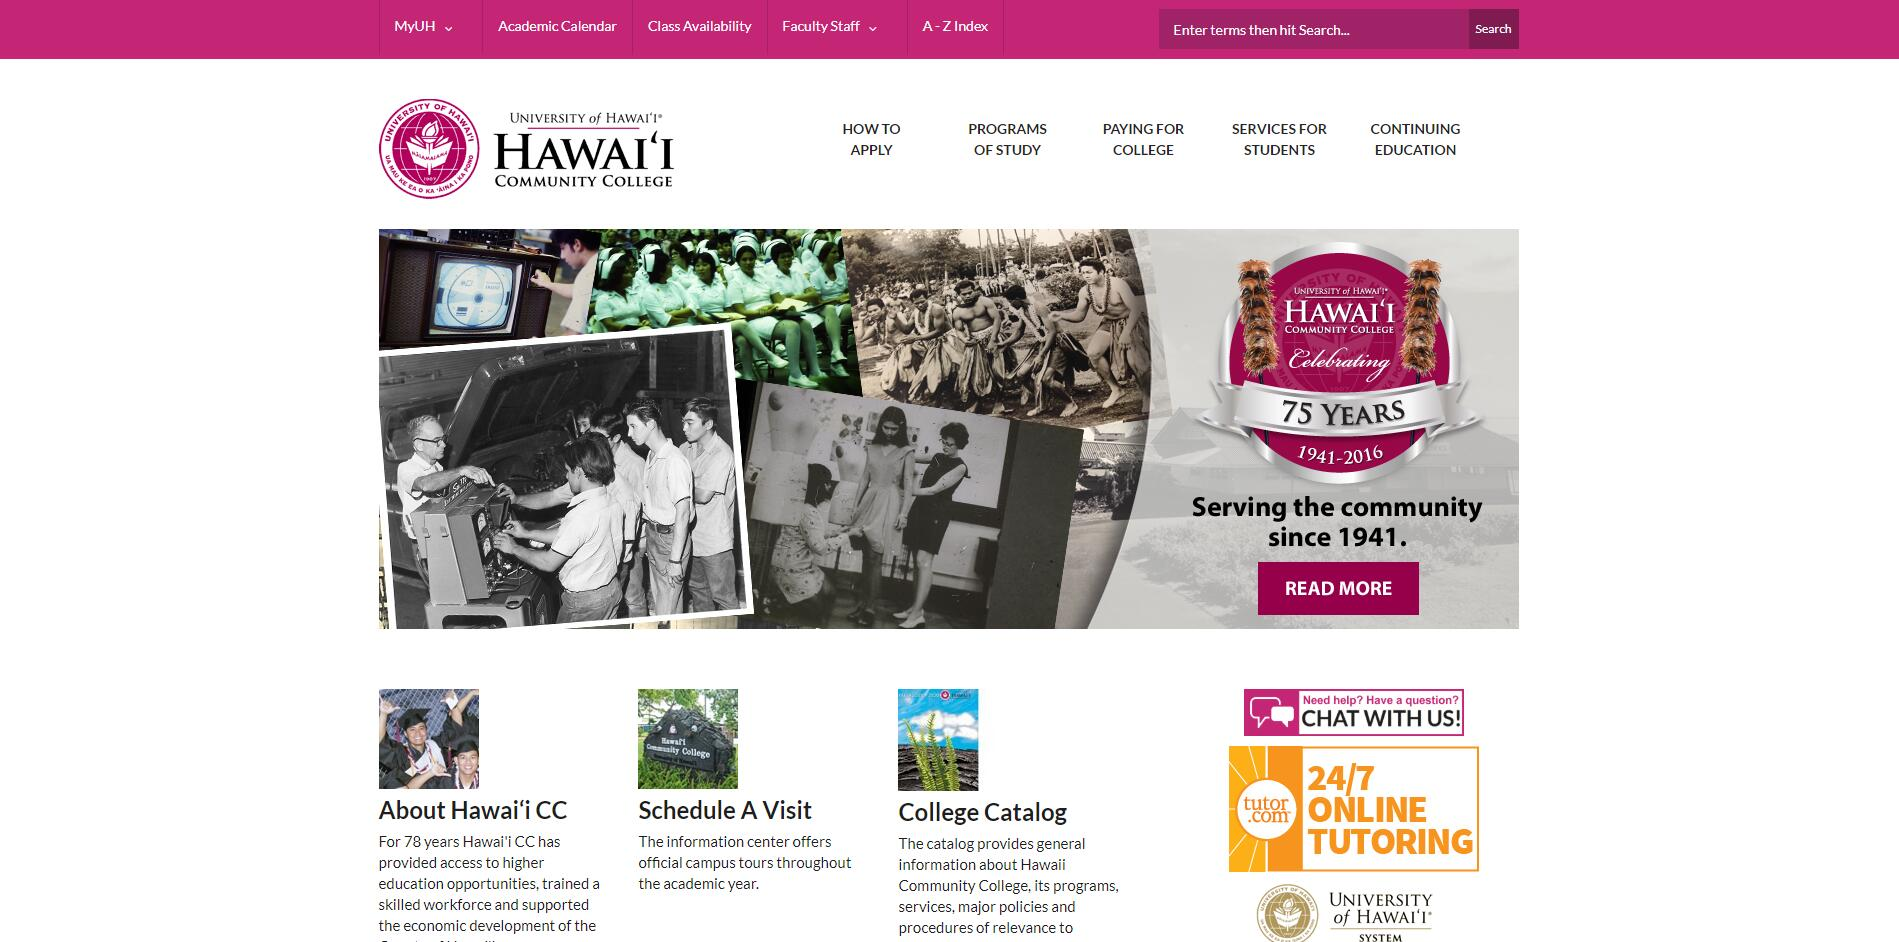 List of Community Colleges in Hawaii